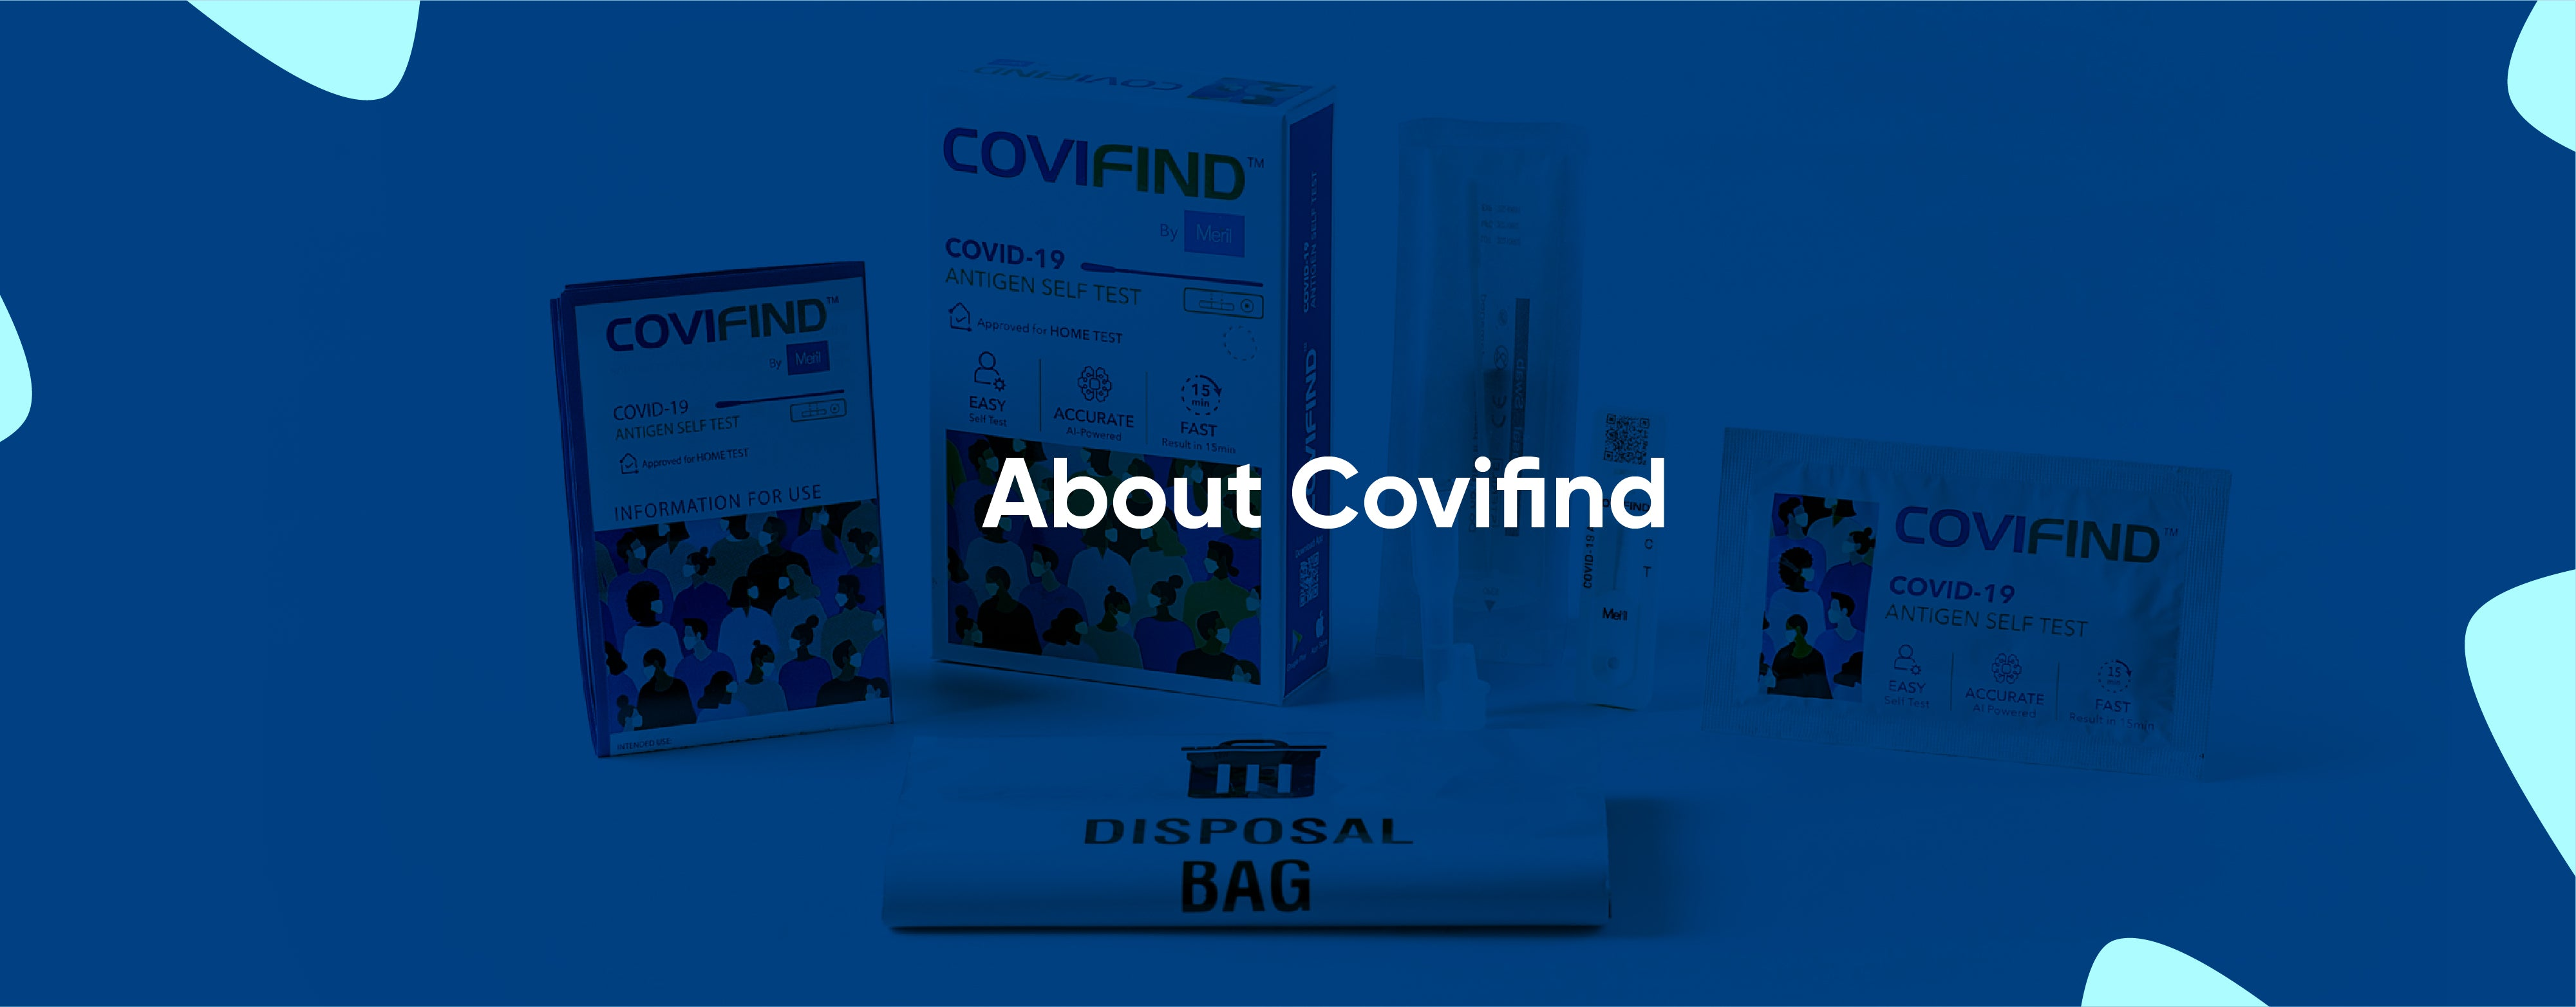 About Covifind